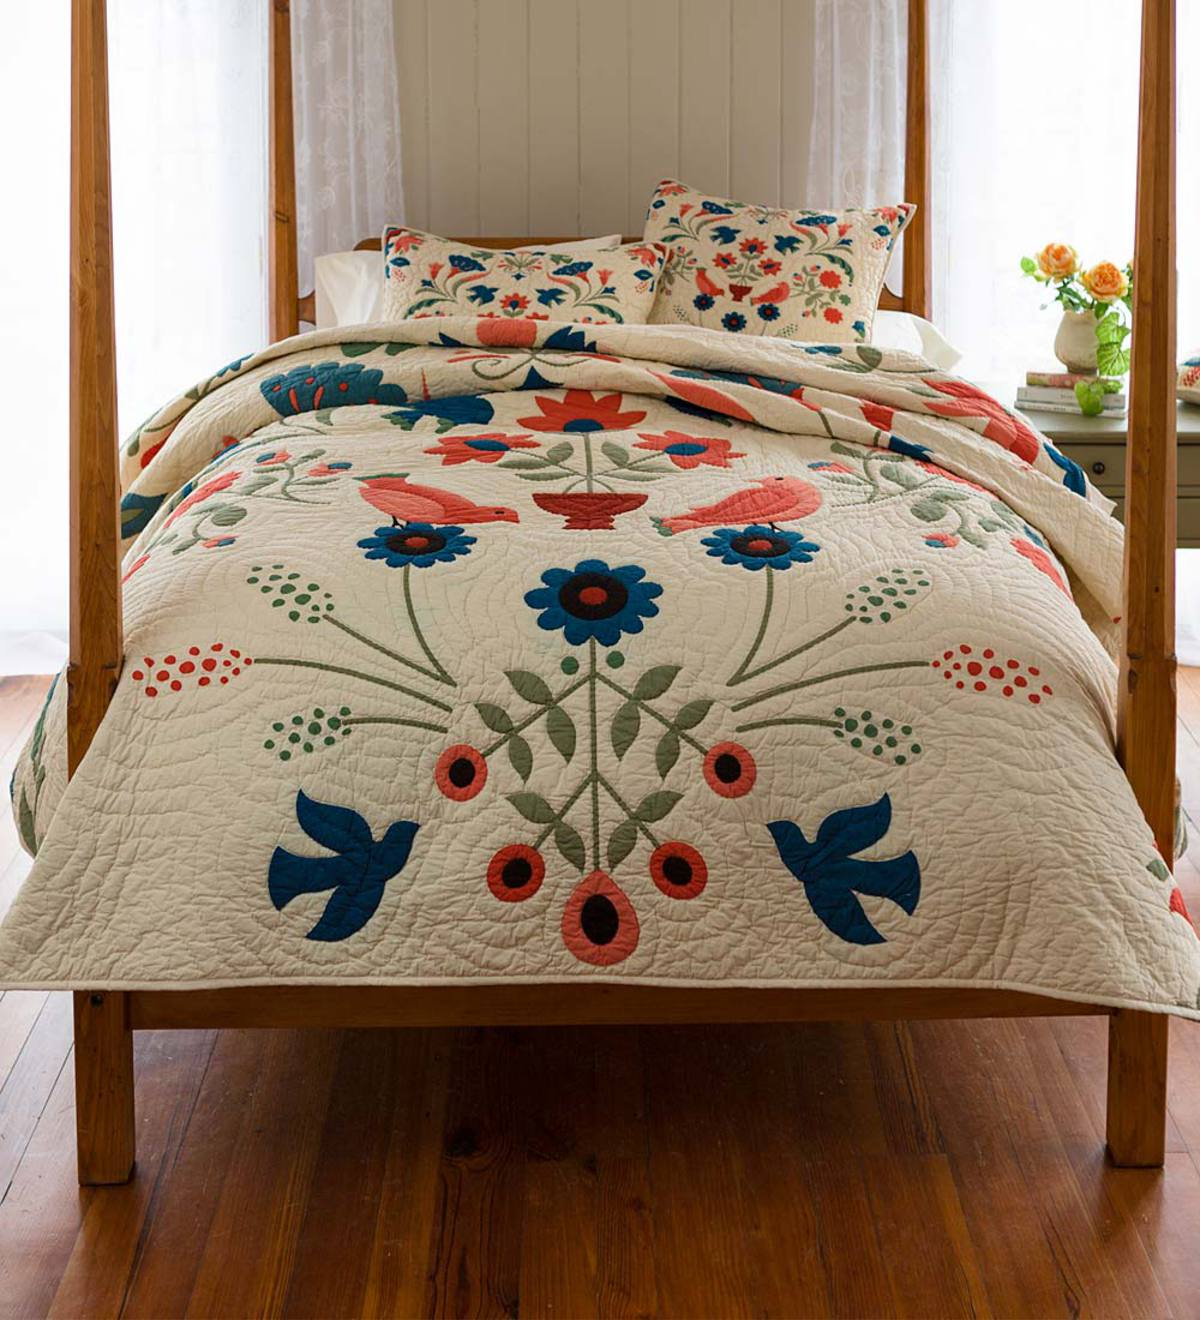 Ansley Folk Art Quilt Set in Cream